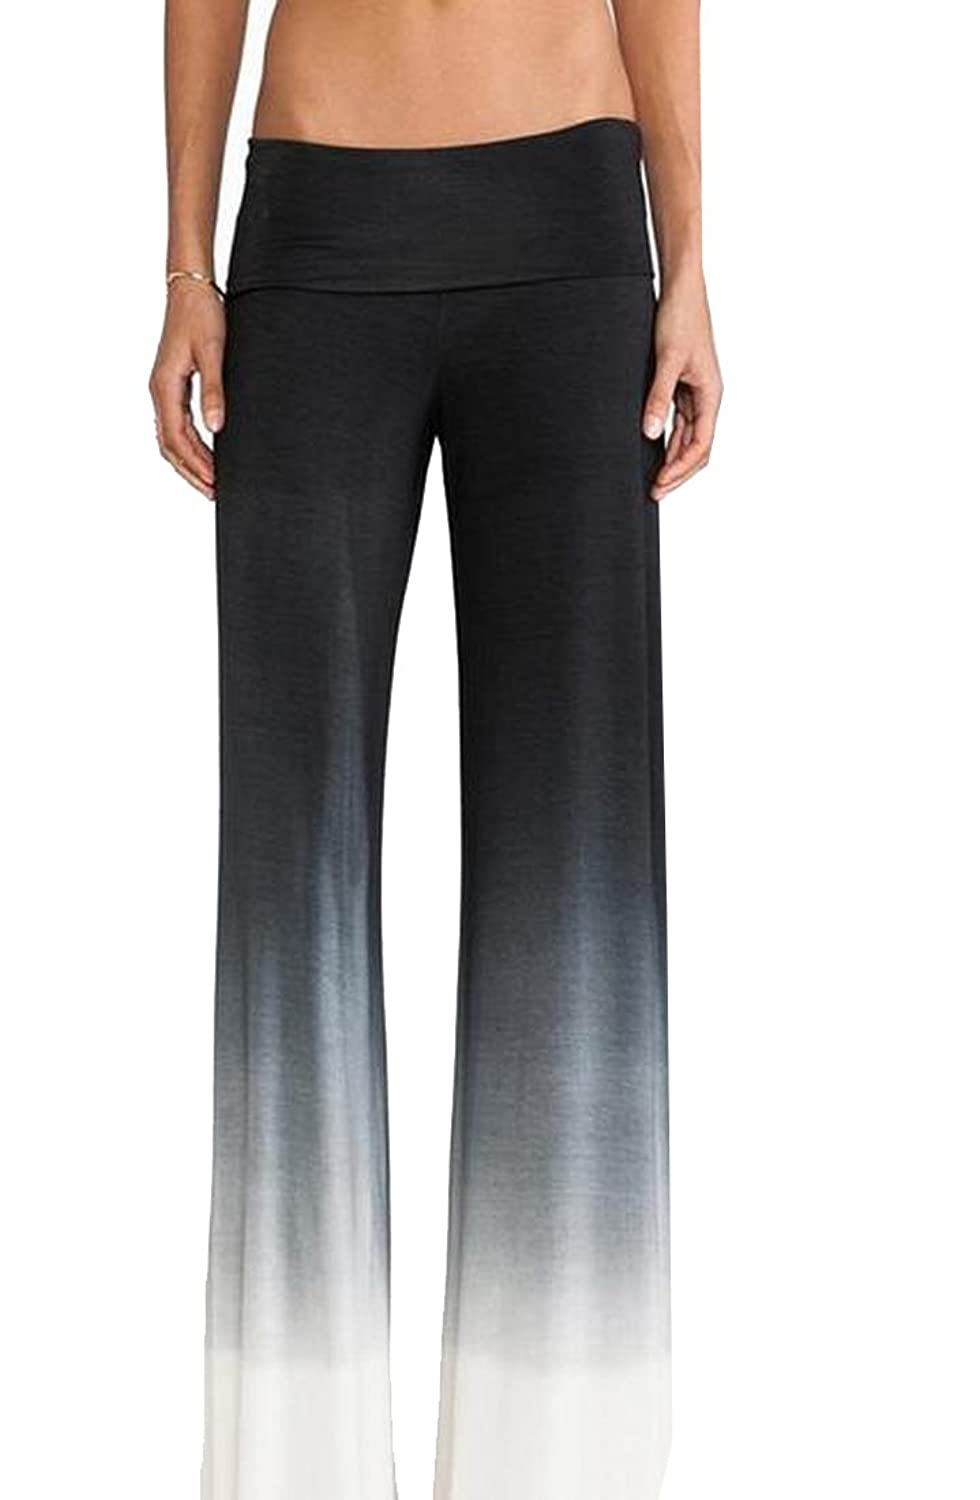 Abetteric Women Comfy Chic Fashion Waist Baggy Wide Leg Pants